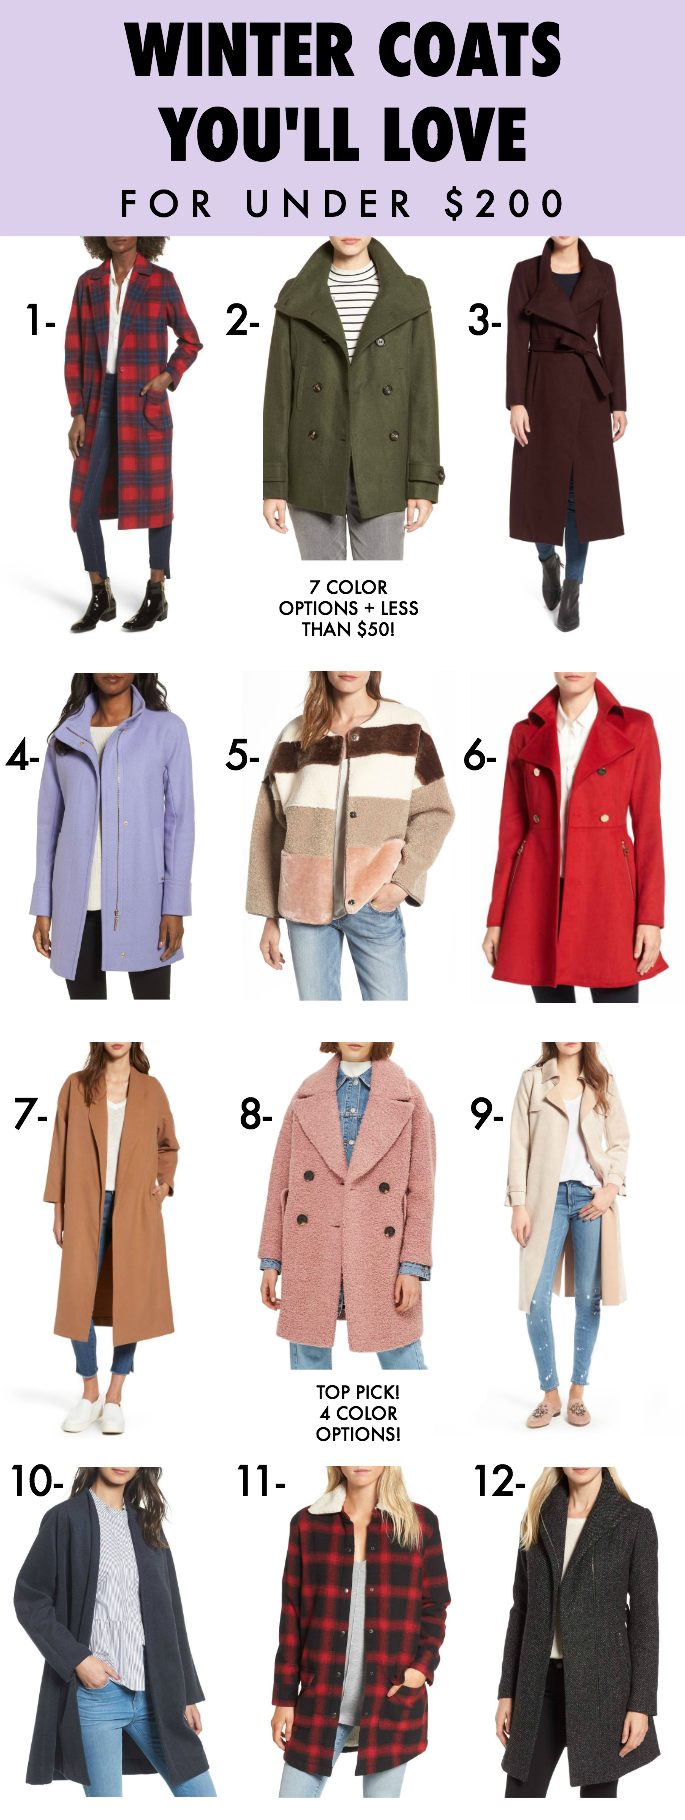 Winter Coats You'll Love For Under $200 | Southern Flair